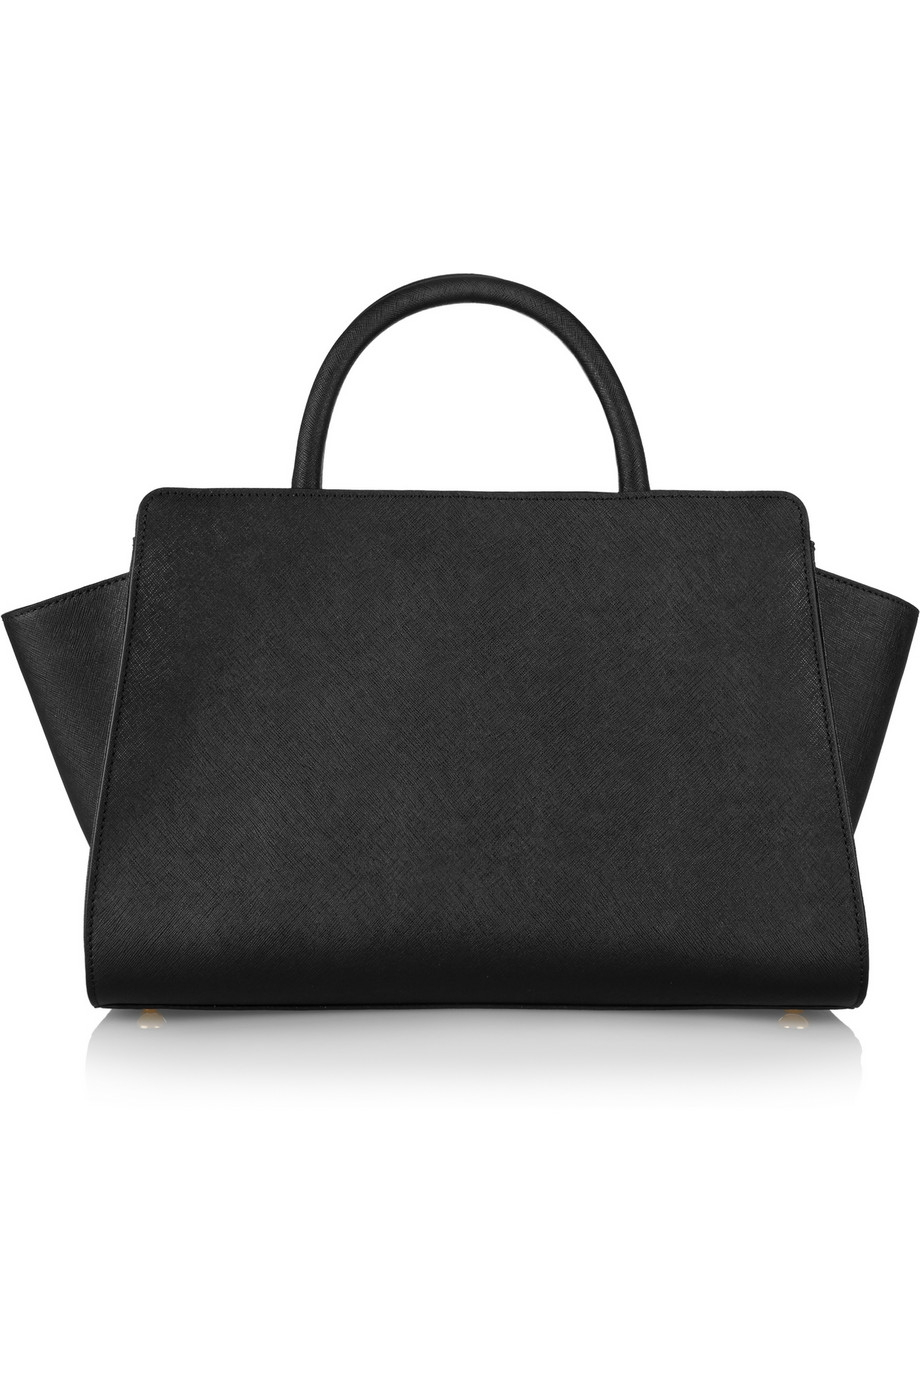 Lyst Zac Zac Posen Eartha East West Textured Leather